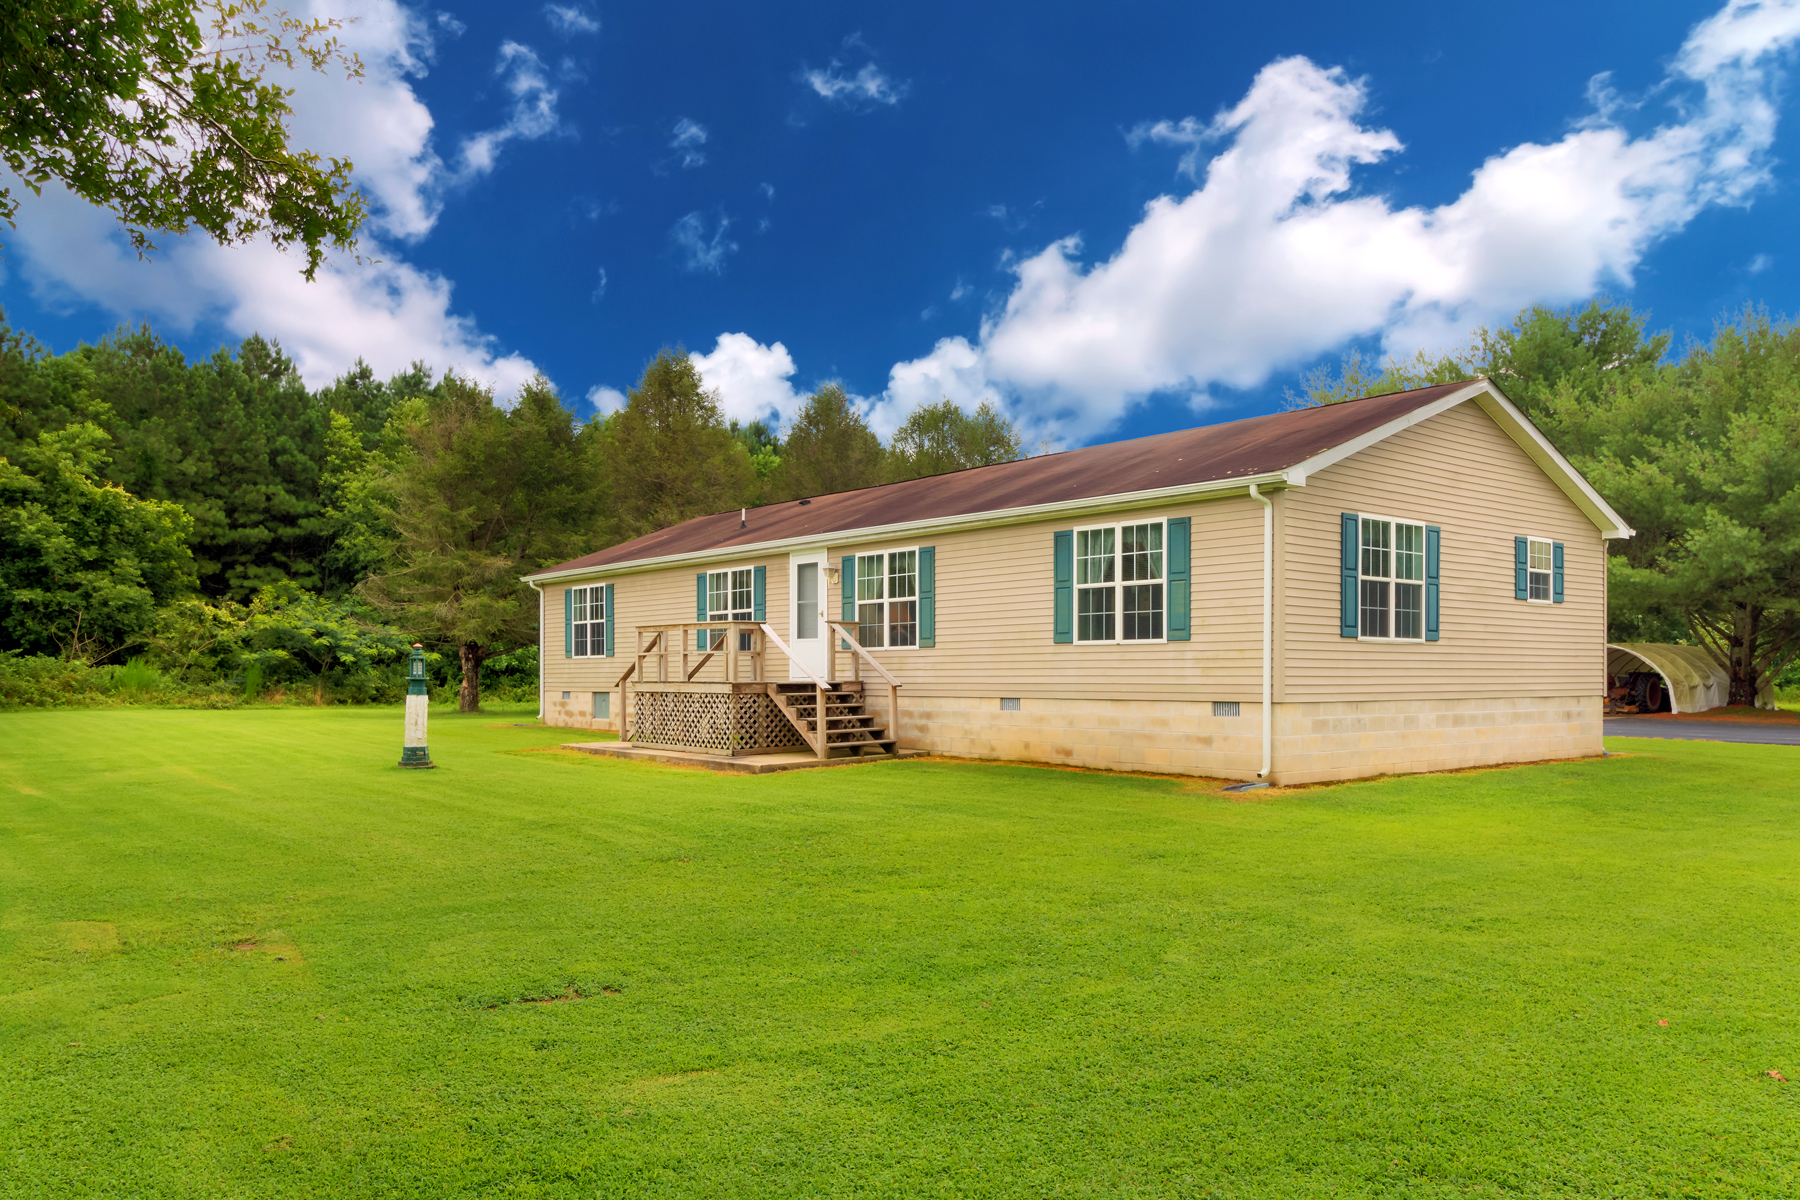 sales property at 10440 Azalea Rd, Berlin, MD 21811